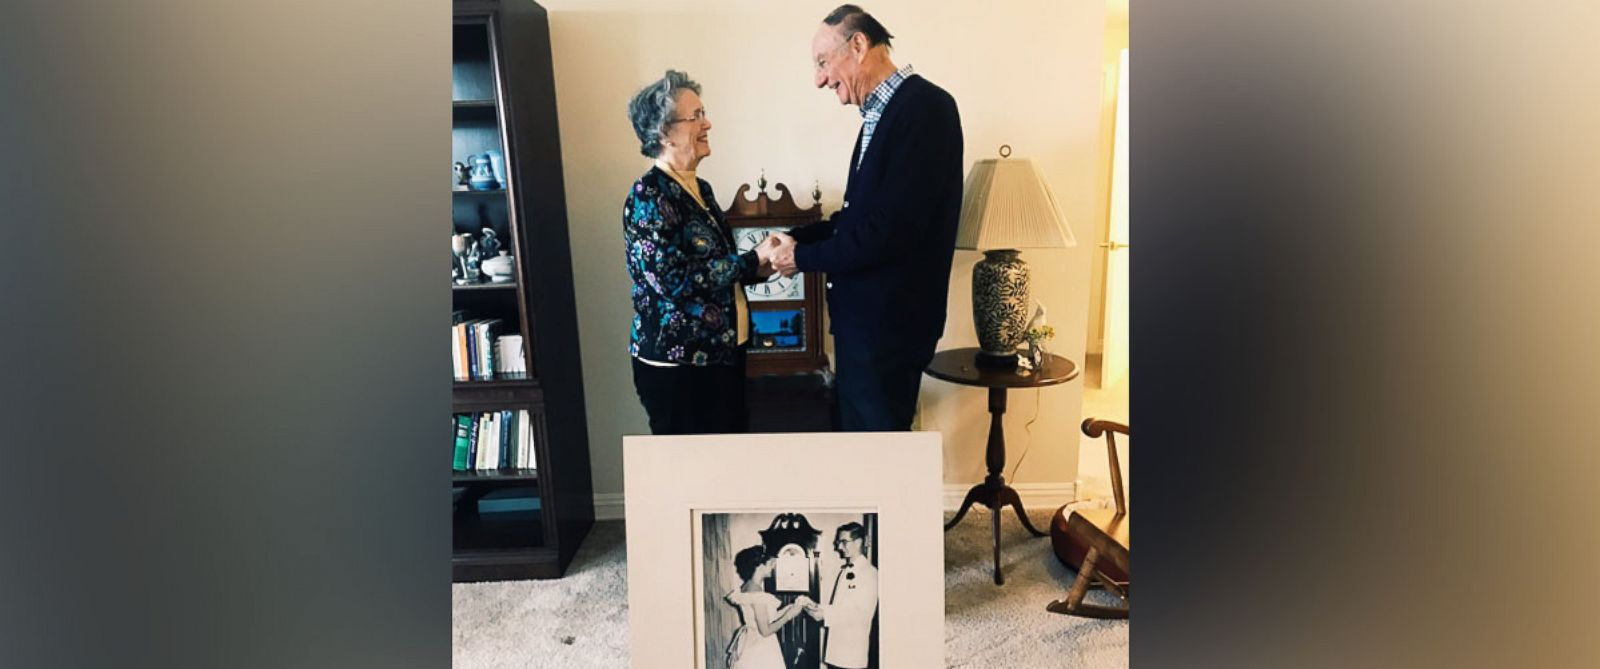 PHOTO: Joyce Kevorkian and Jim Bowman married on April 1 in Notre Dame, Indiana, 64 years after being prom dates.